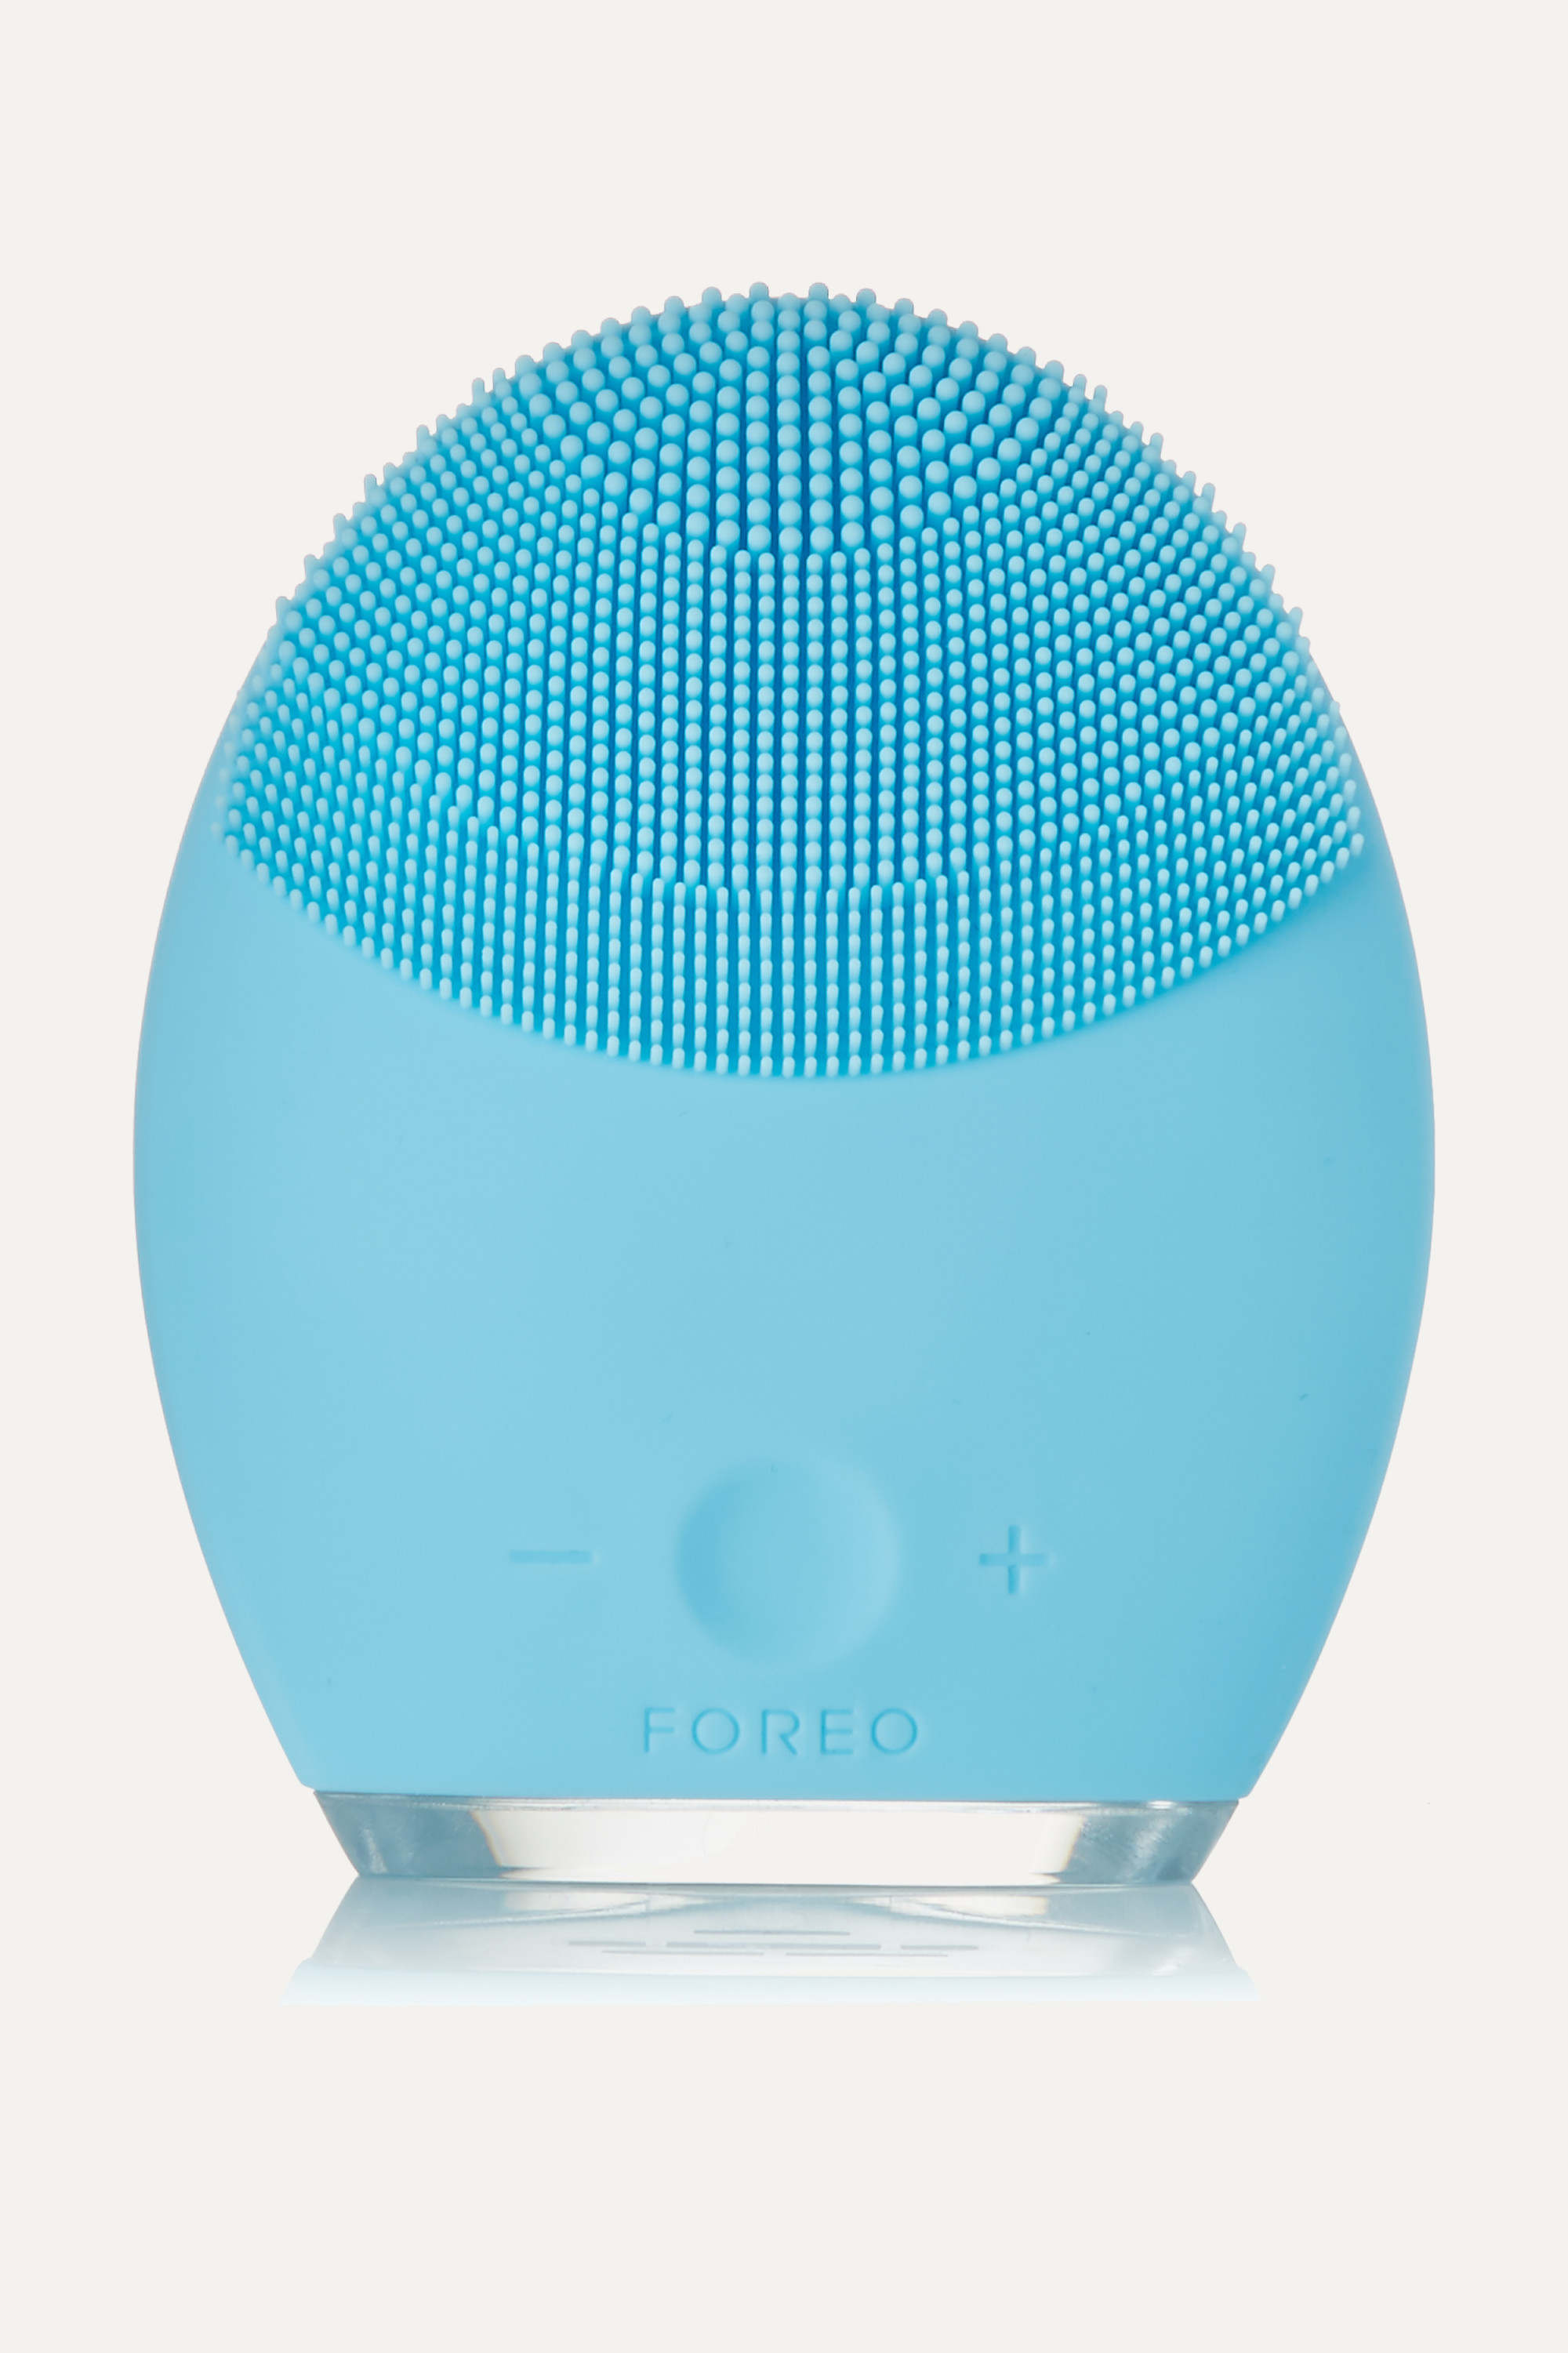 Foreo LUNA™ 2 Face Brush and Anti-Aging Massager for Combination Skin – Gesichtsreinigungsgerät